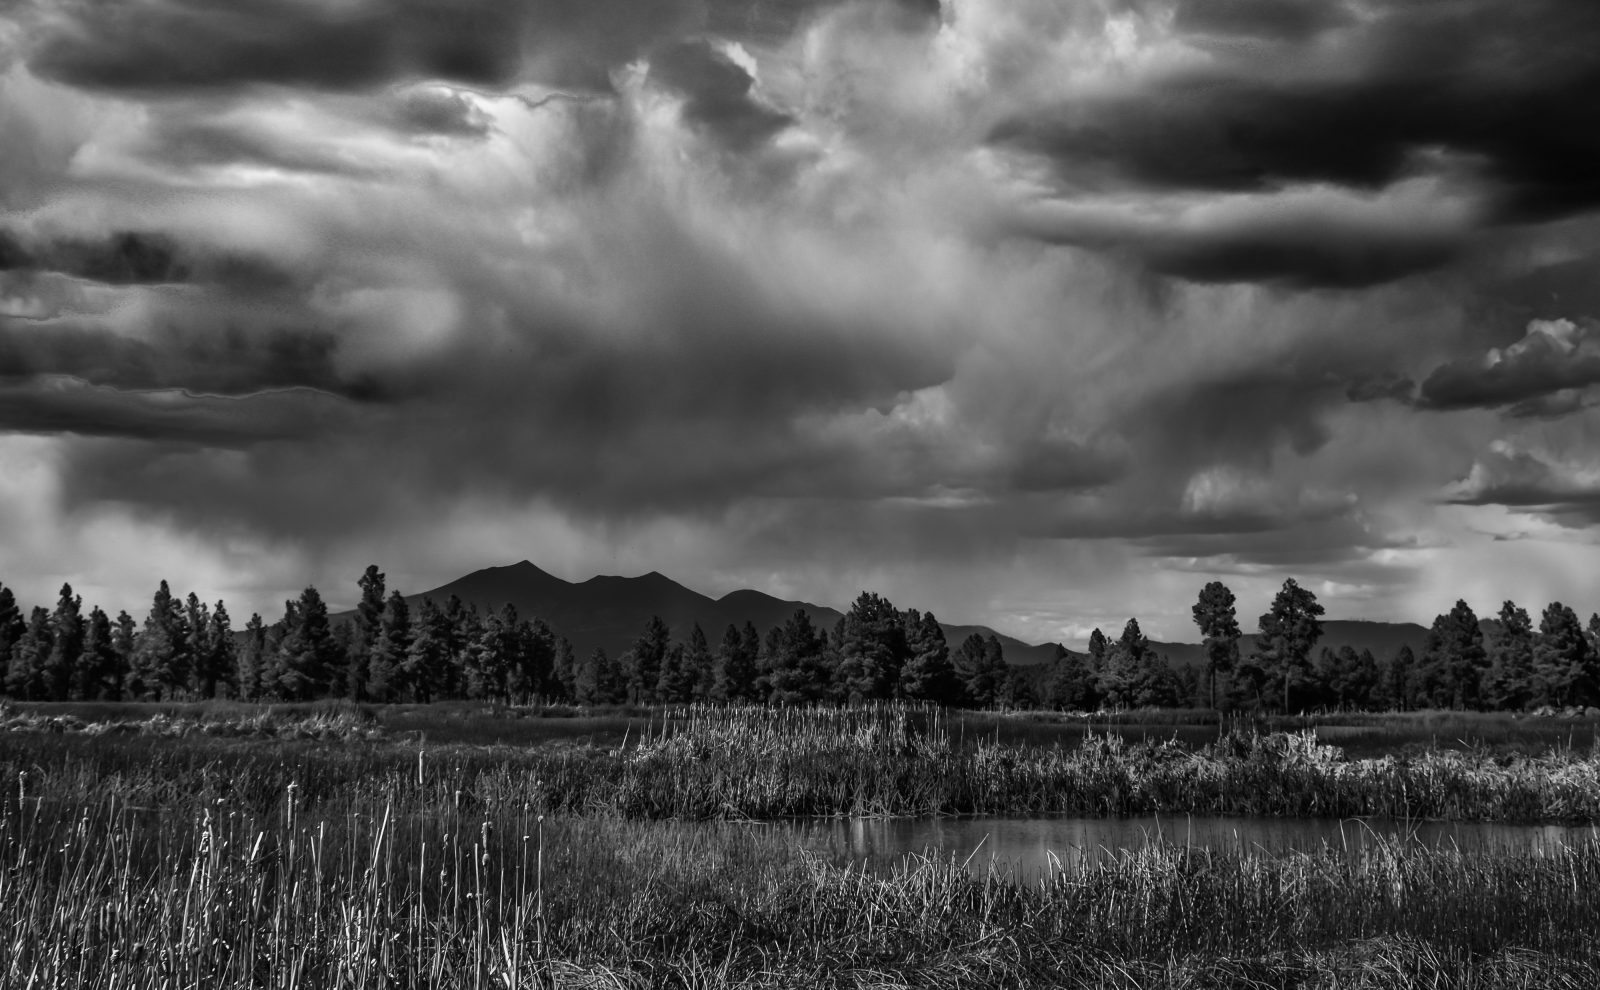 The Beauty of Clouds in Monochrome